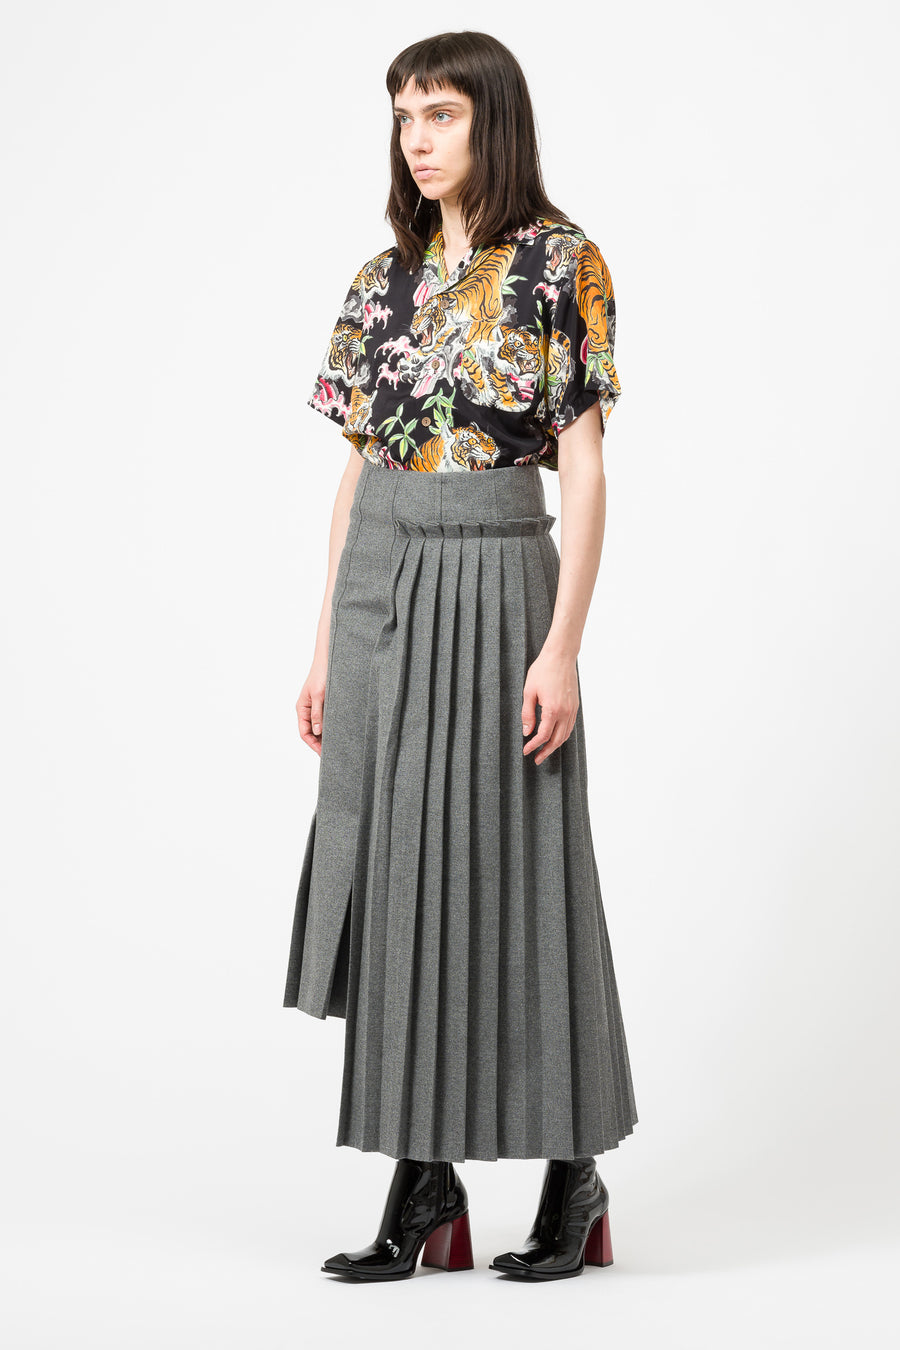 Marni Skirt in Grey - Notre